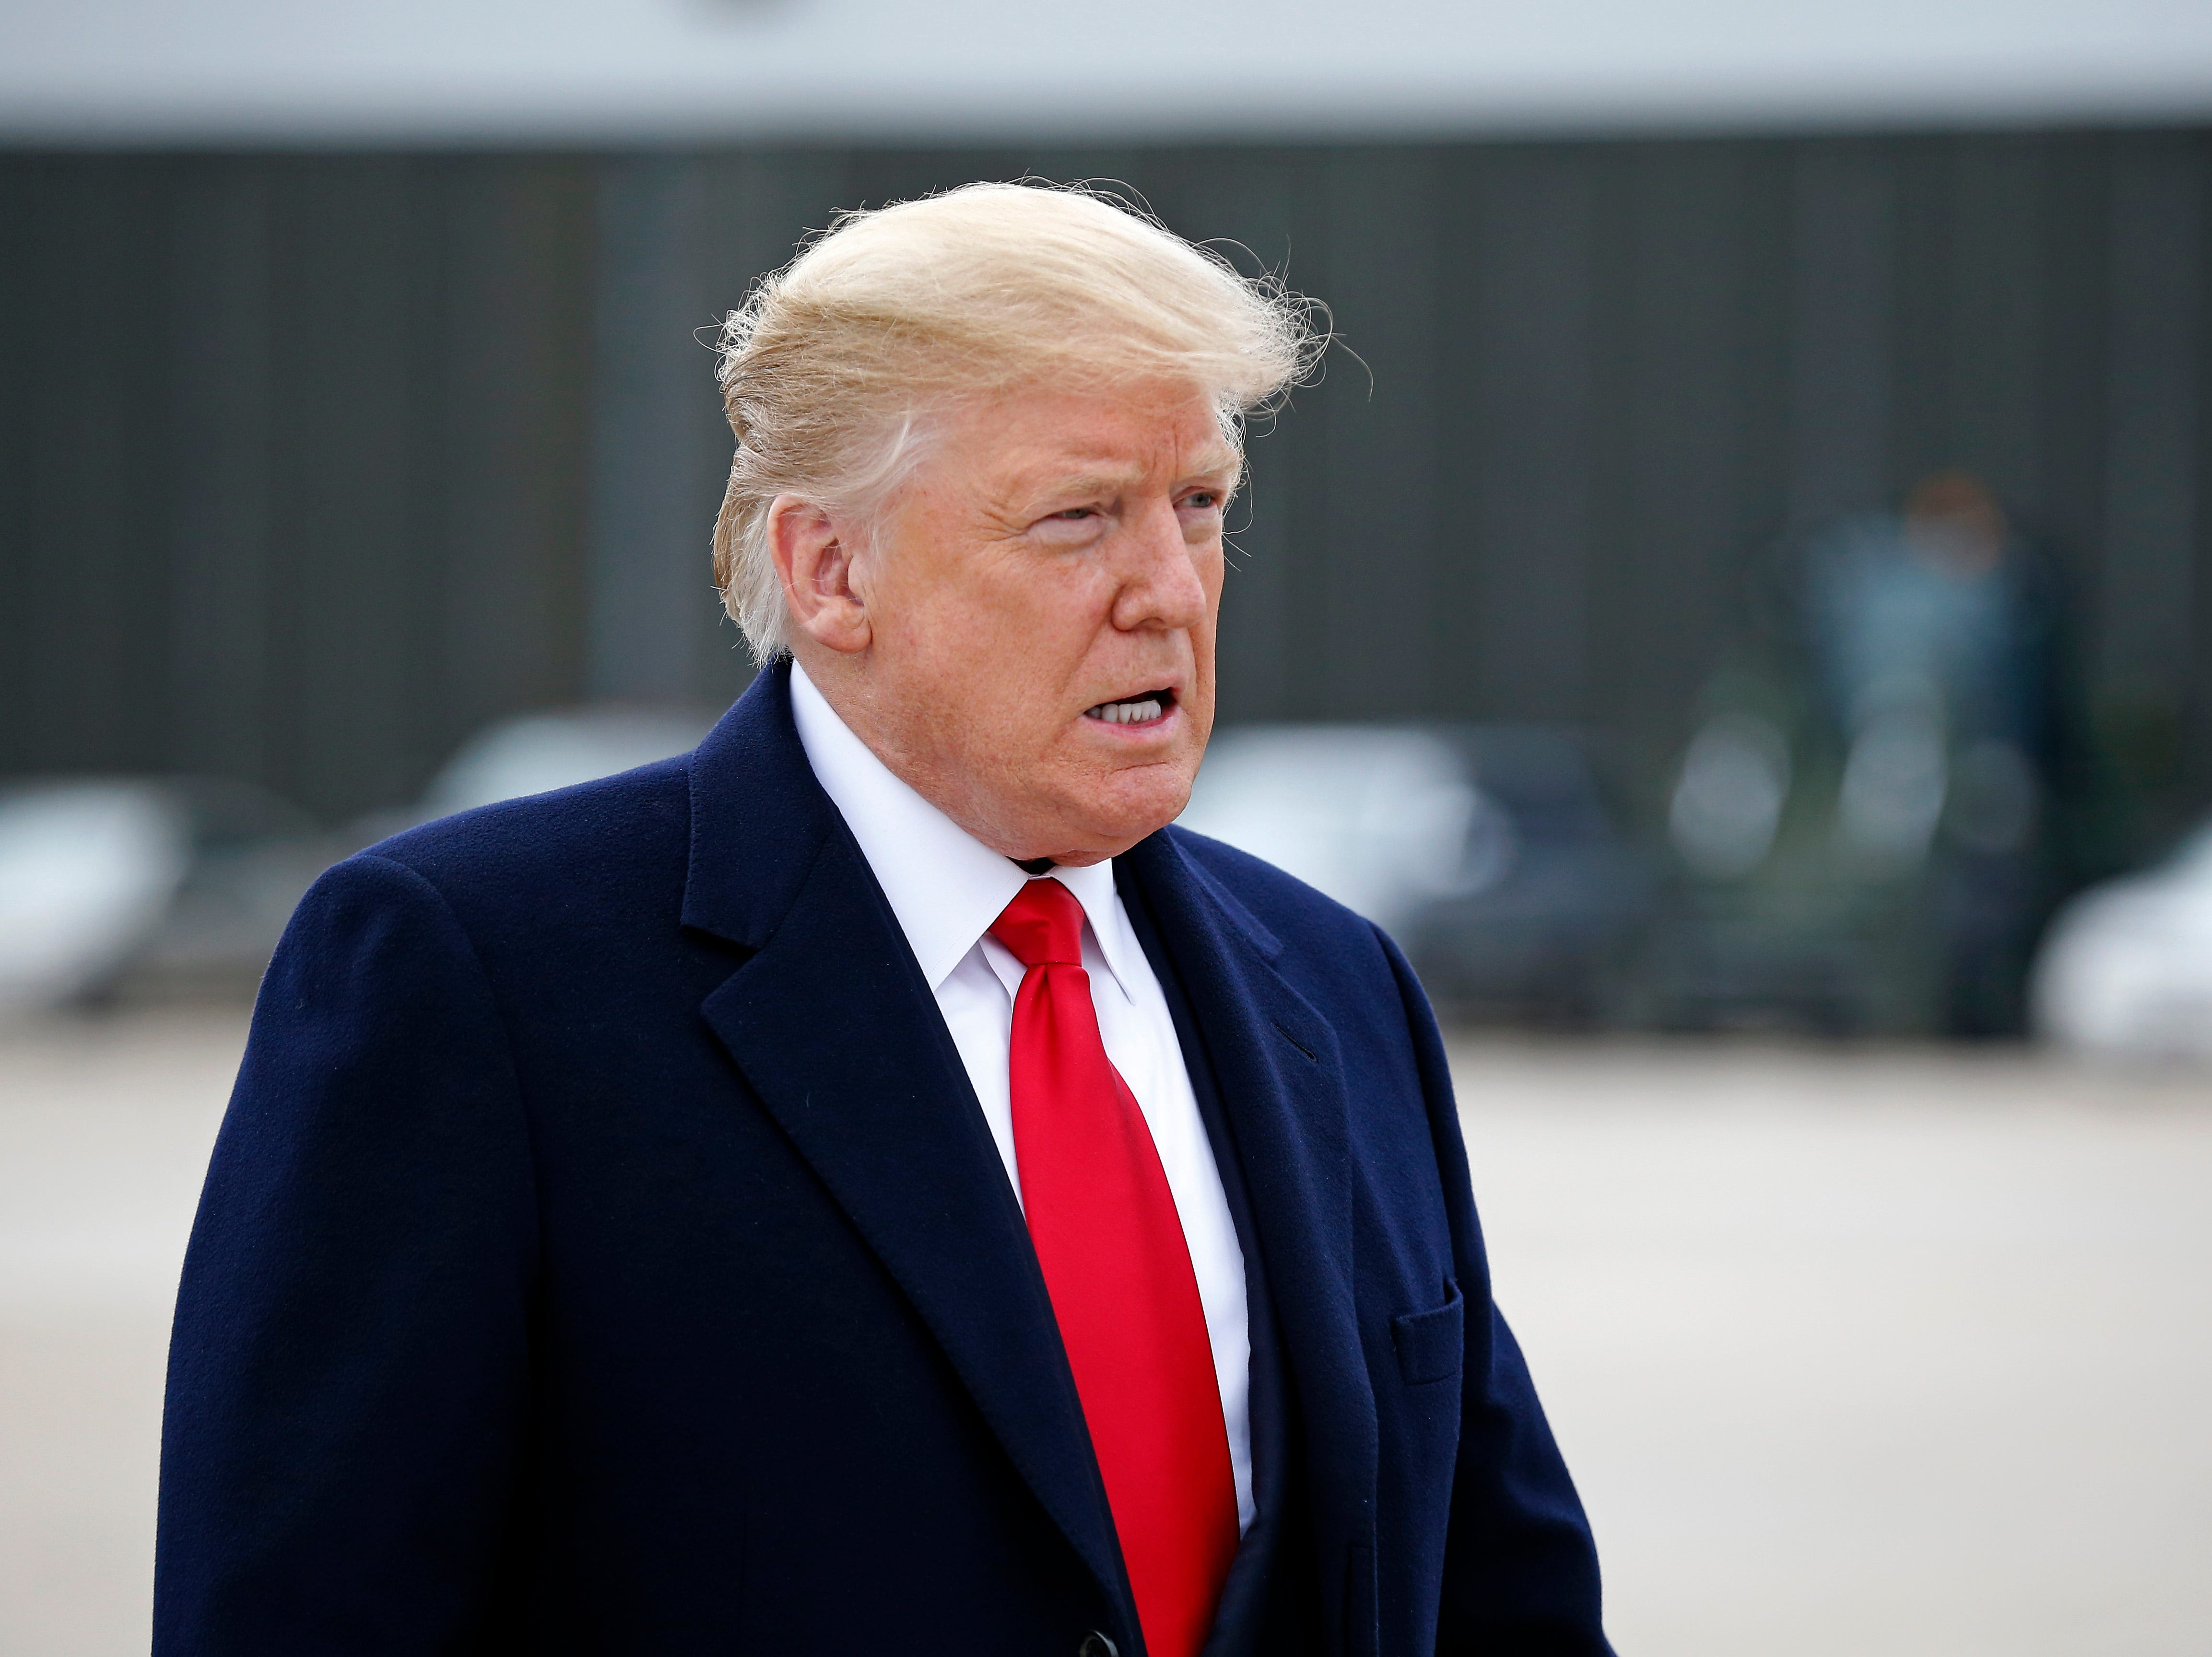 President Donald Trump makes his way to a gathering of reporters next to Air Force One at Lunken Airport in Cincinnati on Friday, Oct. 12, 2018. President Trump visited the Cincinnati area for a MAGA Rally at the Warren County Fair Grounds in Lebanon, Ohio, Friday night.